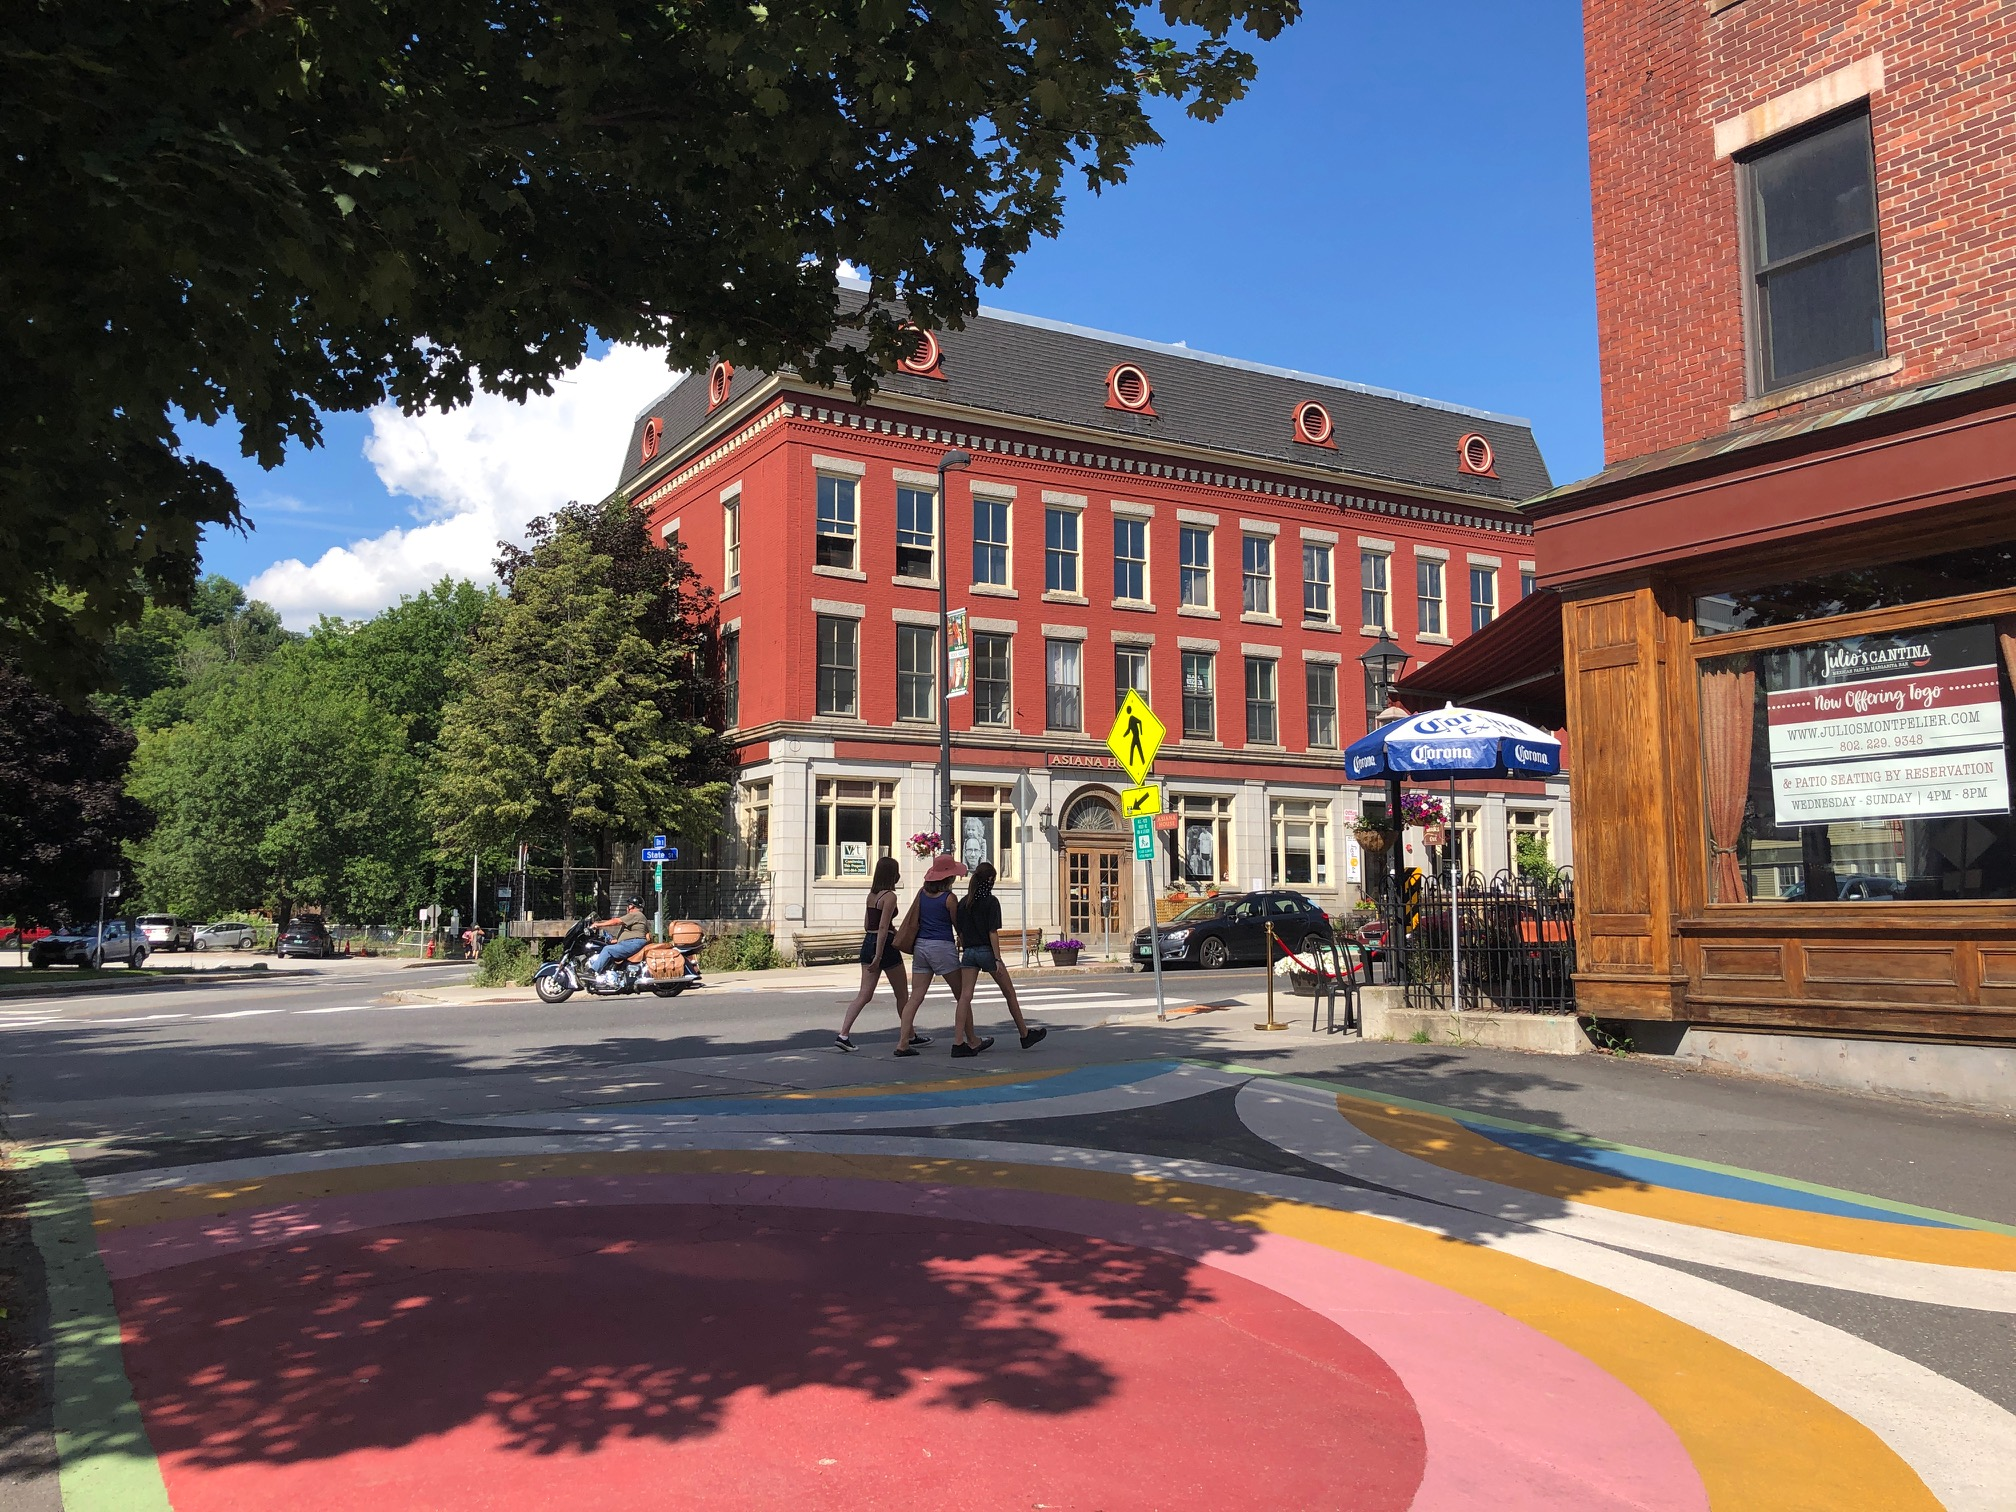 Colorful pavement art in Montpelier at the intersection of State Street and Elm.